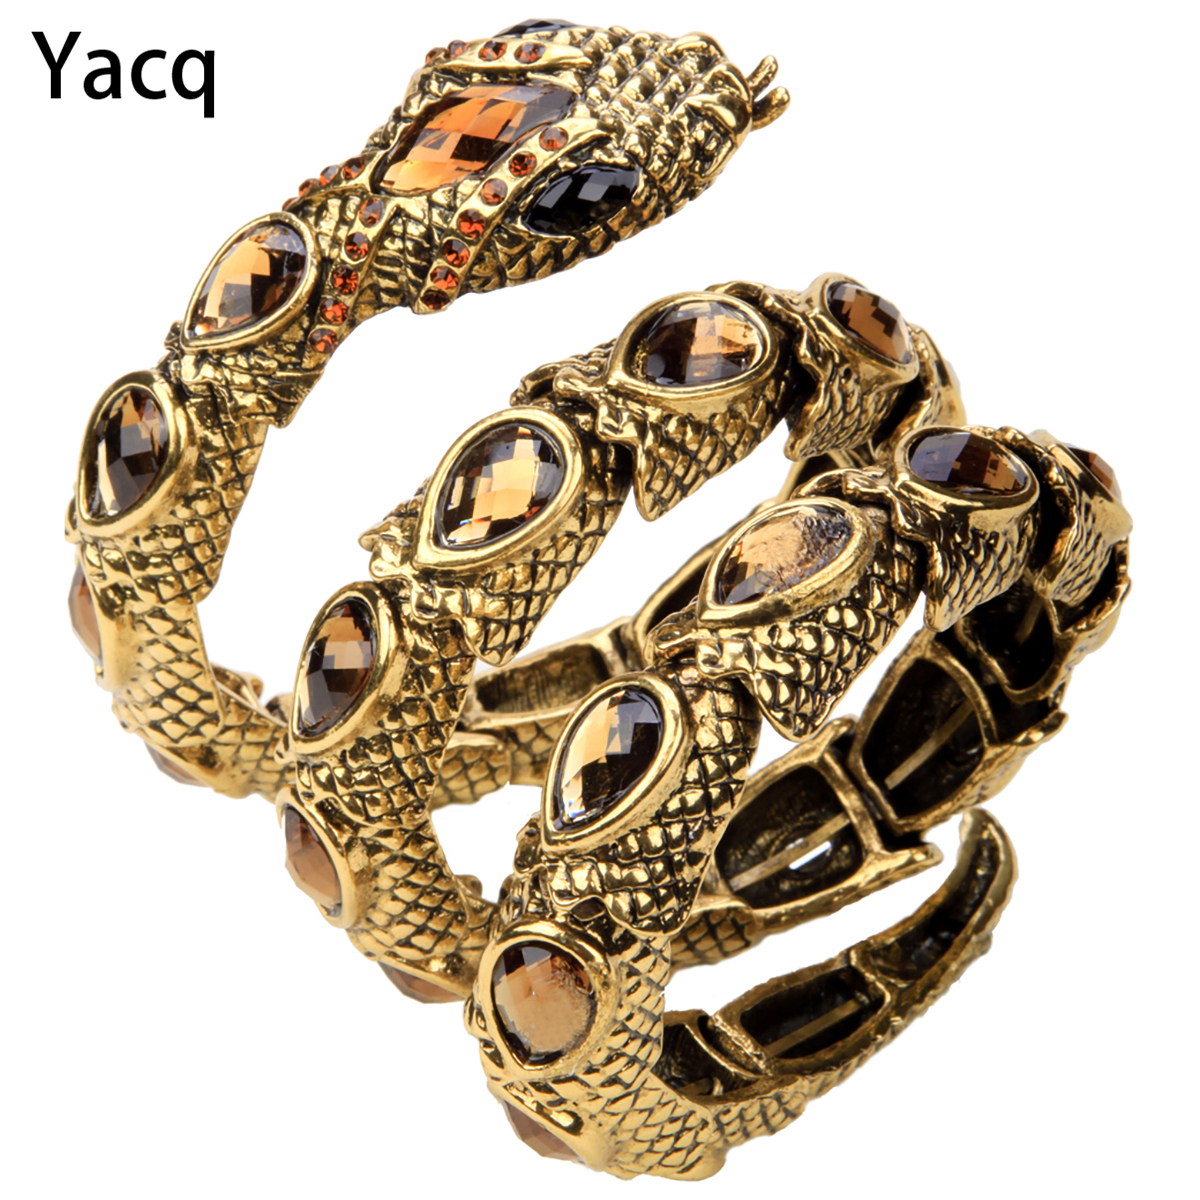 YACQ Stretch Snake Bracelet Armlet Upper Arm Cuff Women Punk Rock Crystal Bangle Jewelry Gold Silver Color Dropshipping A32